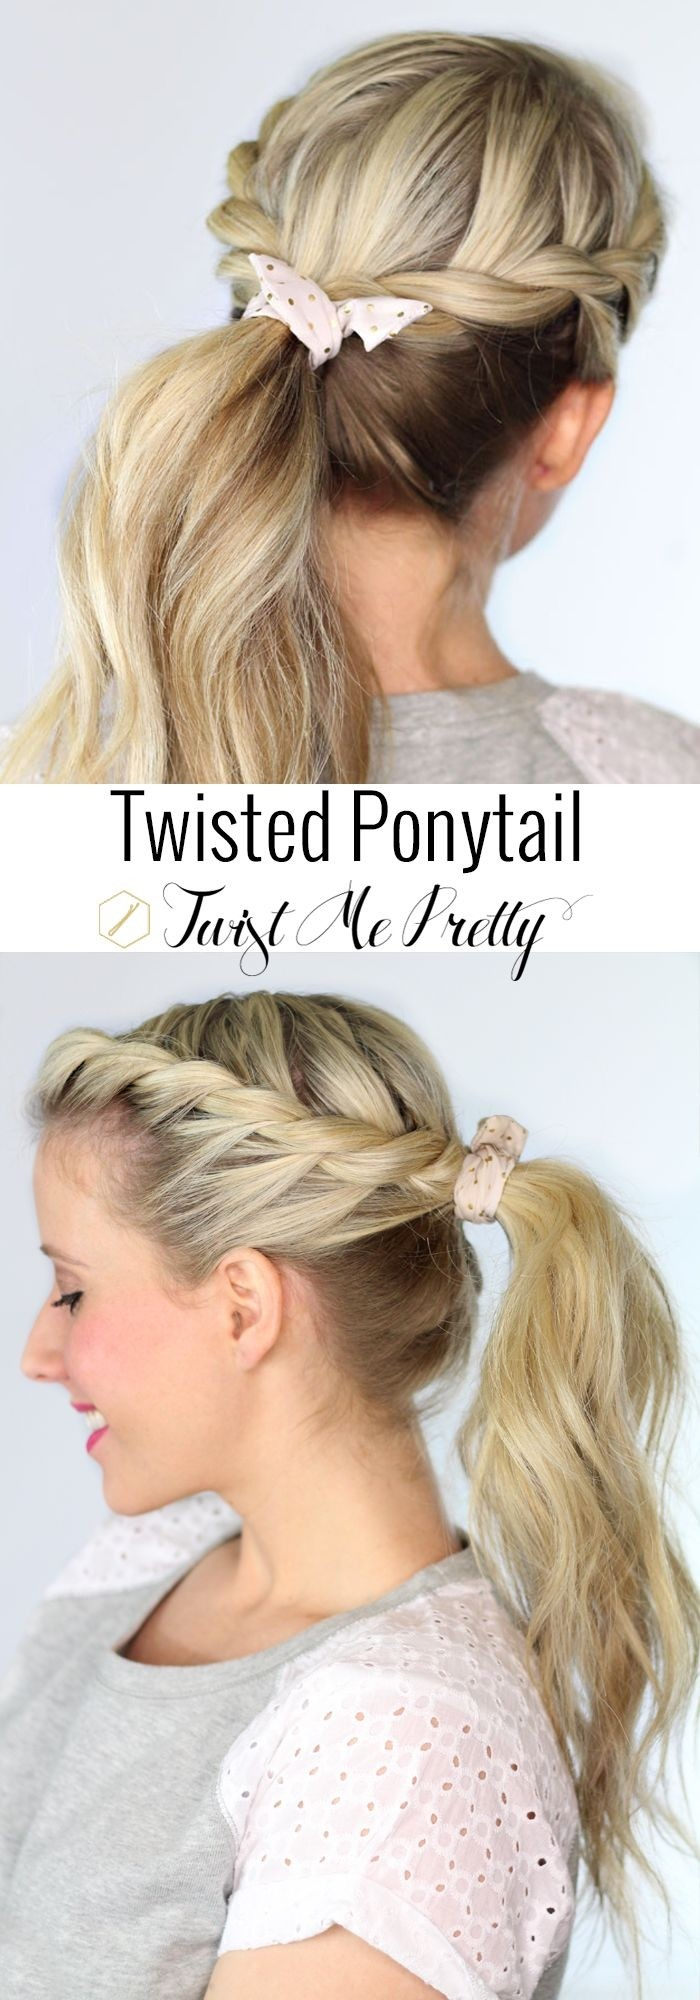 top 10 fashionable ponytail hairstyles for summer 2017 | styles weekly